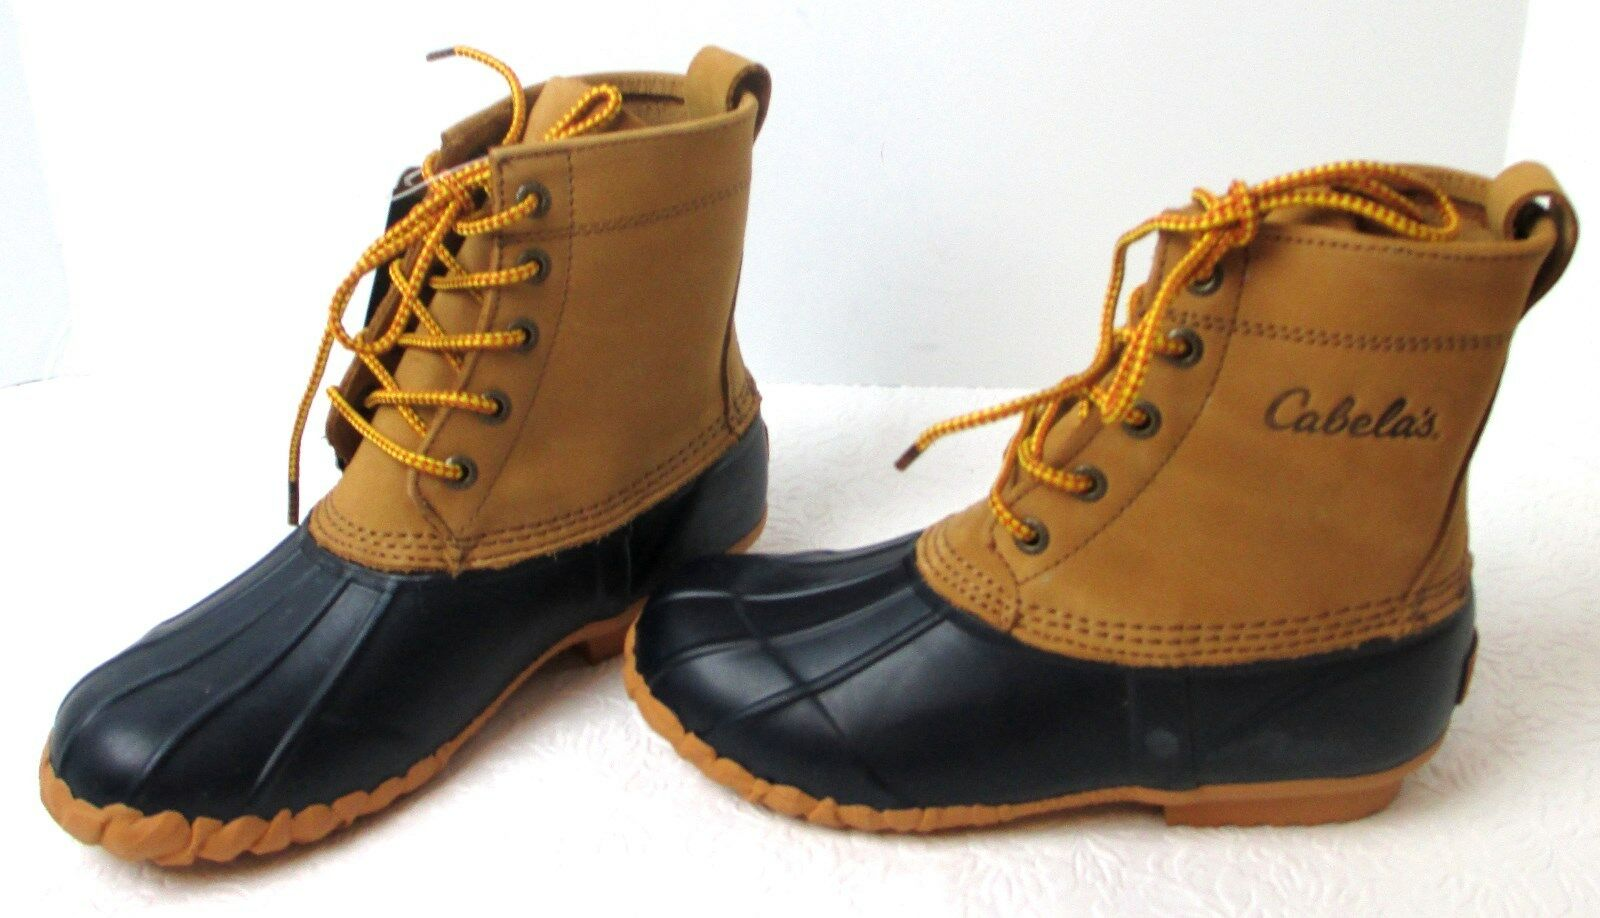 Women's Cabela's 400-Gram Lace Up Oil Tanned Leather &  Navy Rubber Duck Boots